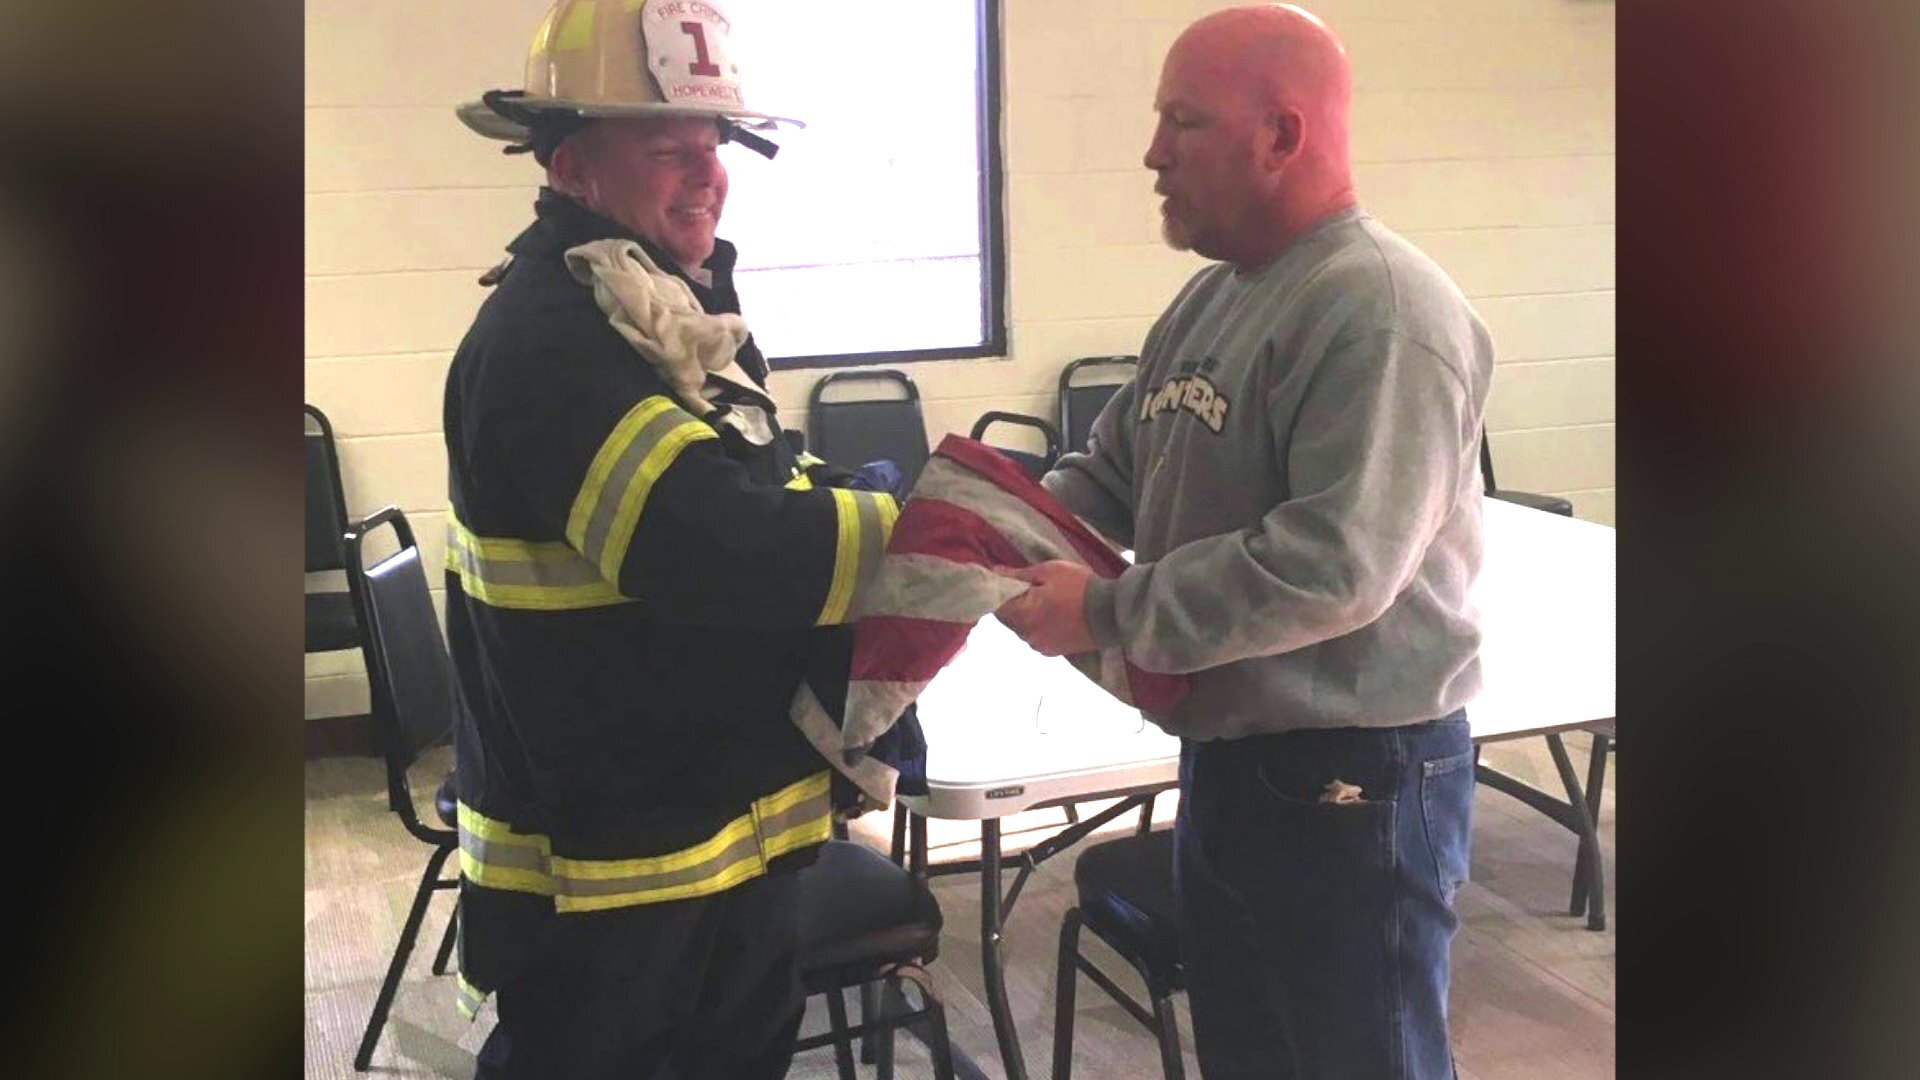 Photos: Firefighters save American flag outside burning building: 'It just felt like the rightthing'